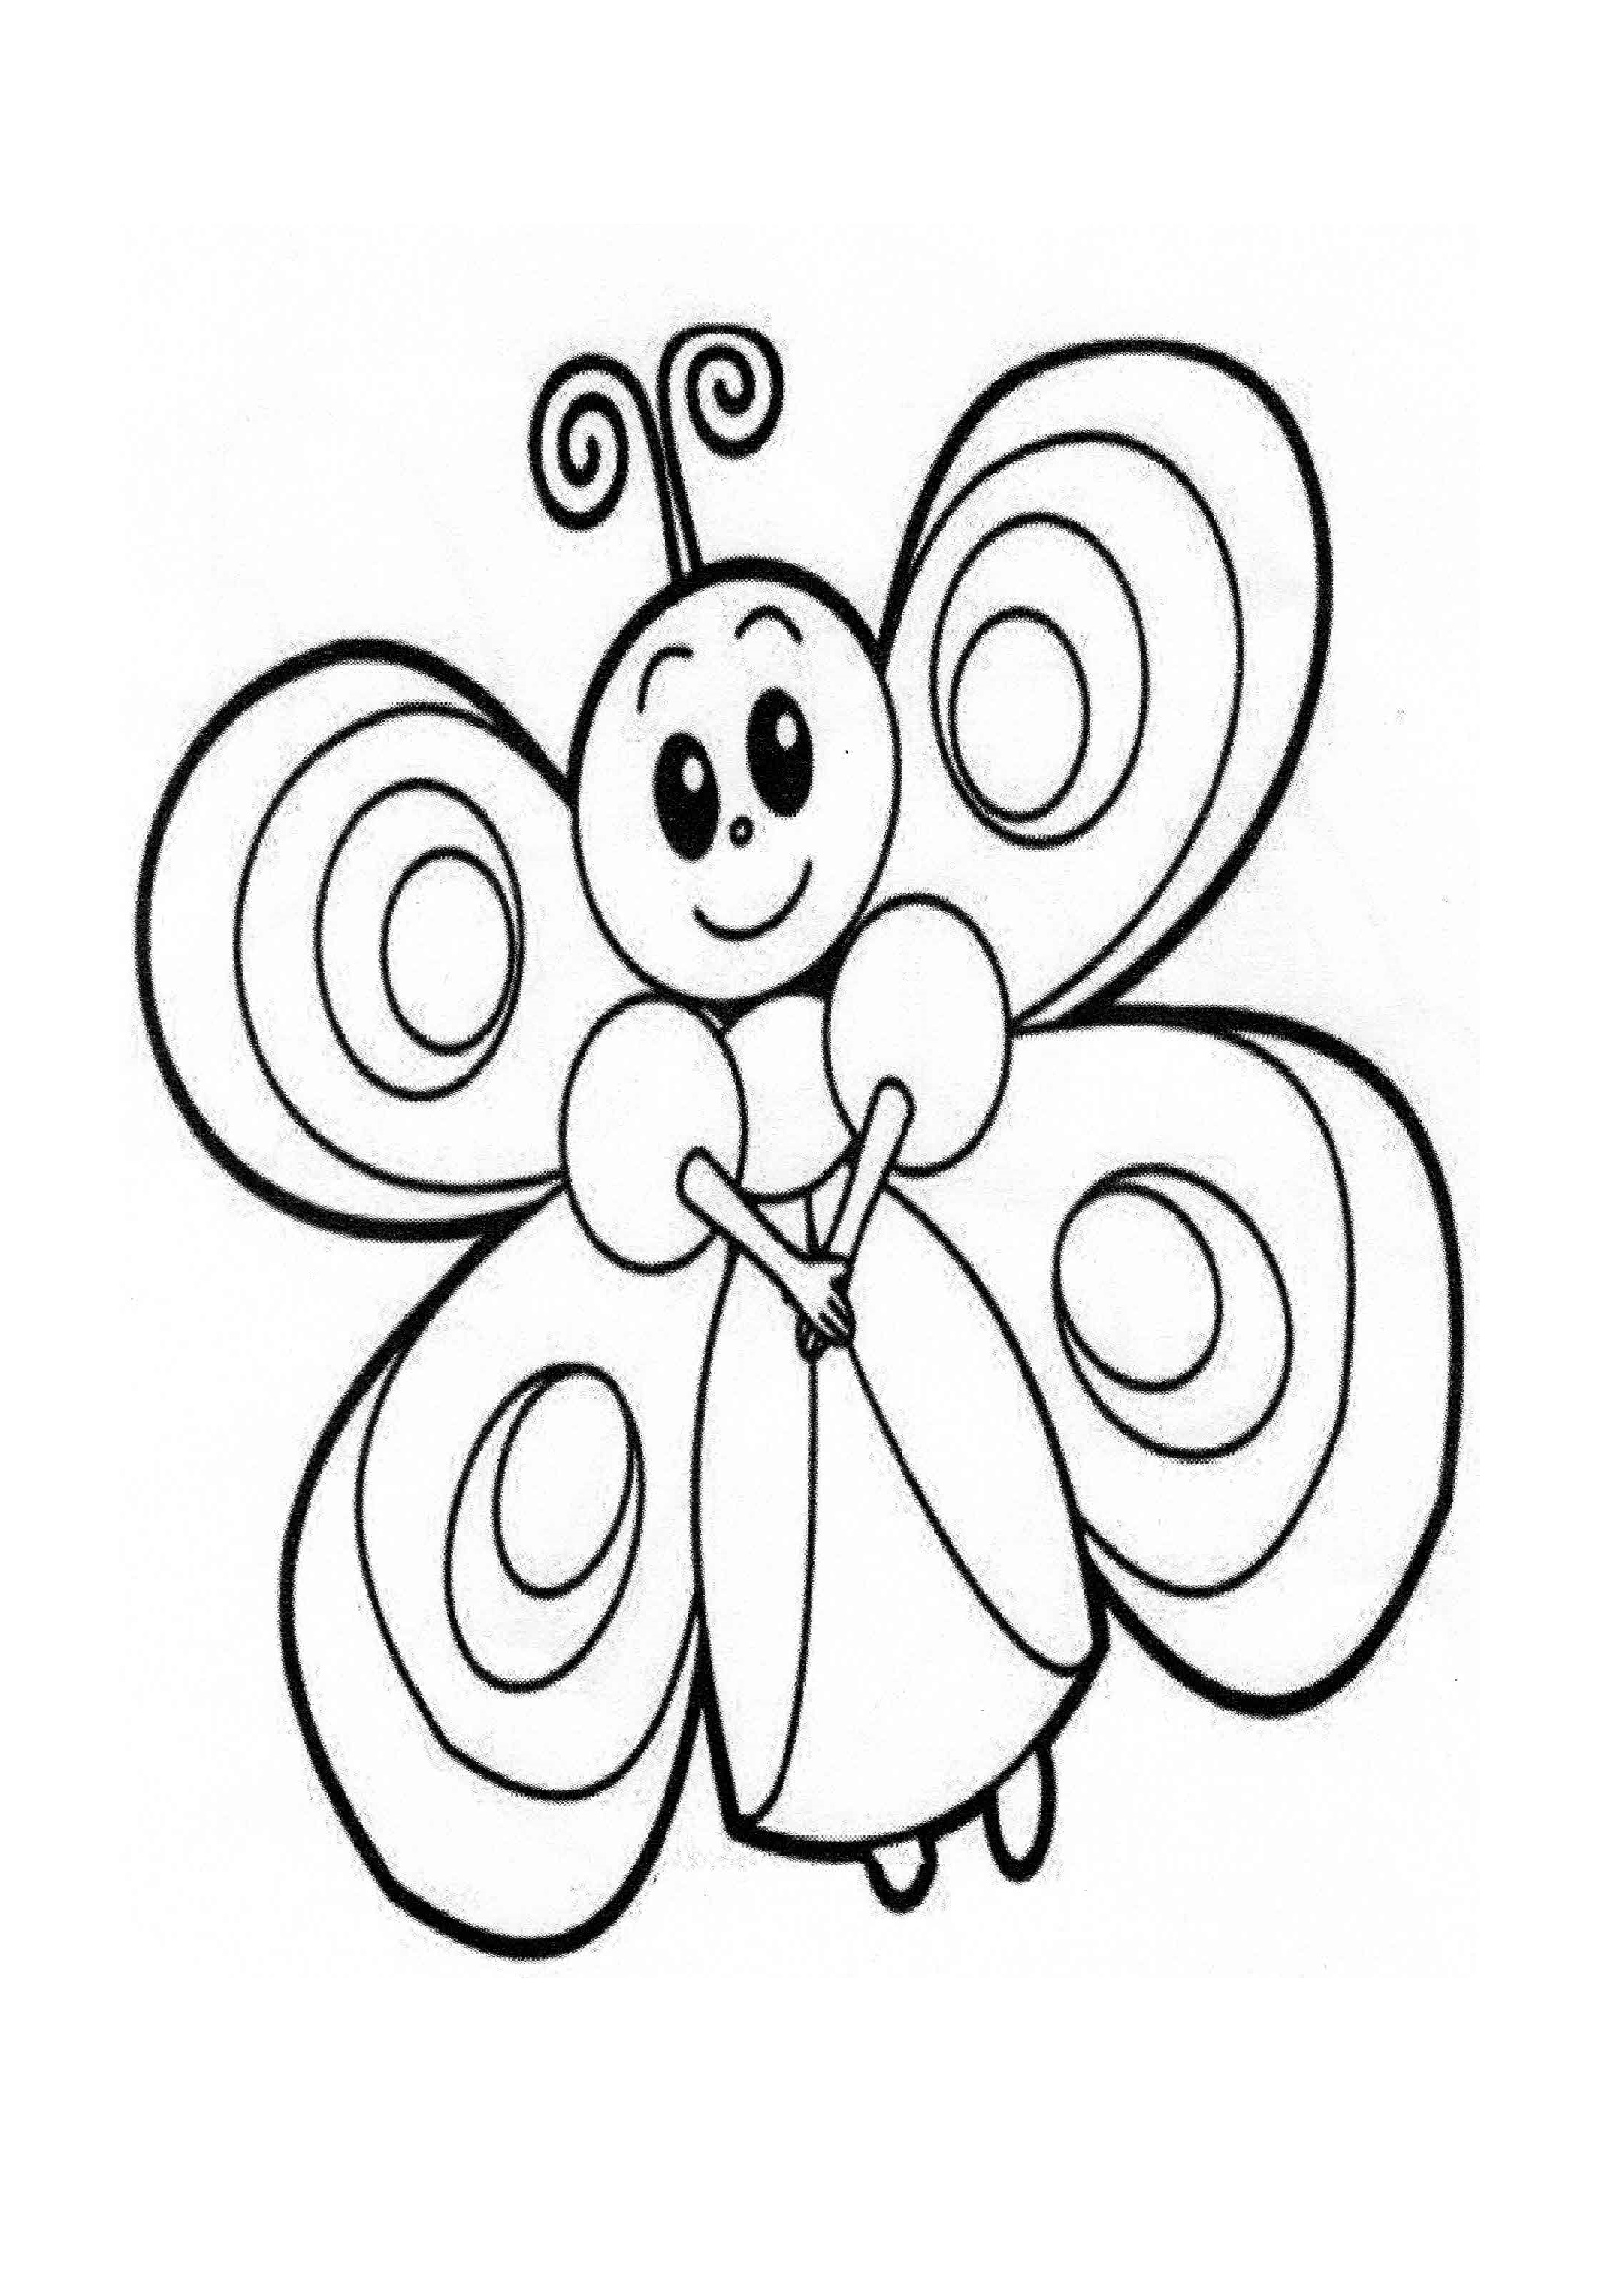 coloring pages with children - photo#38